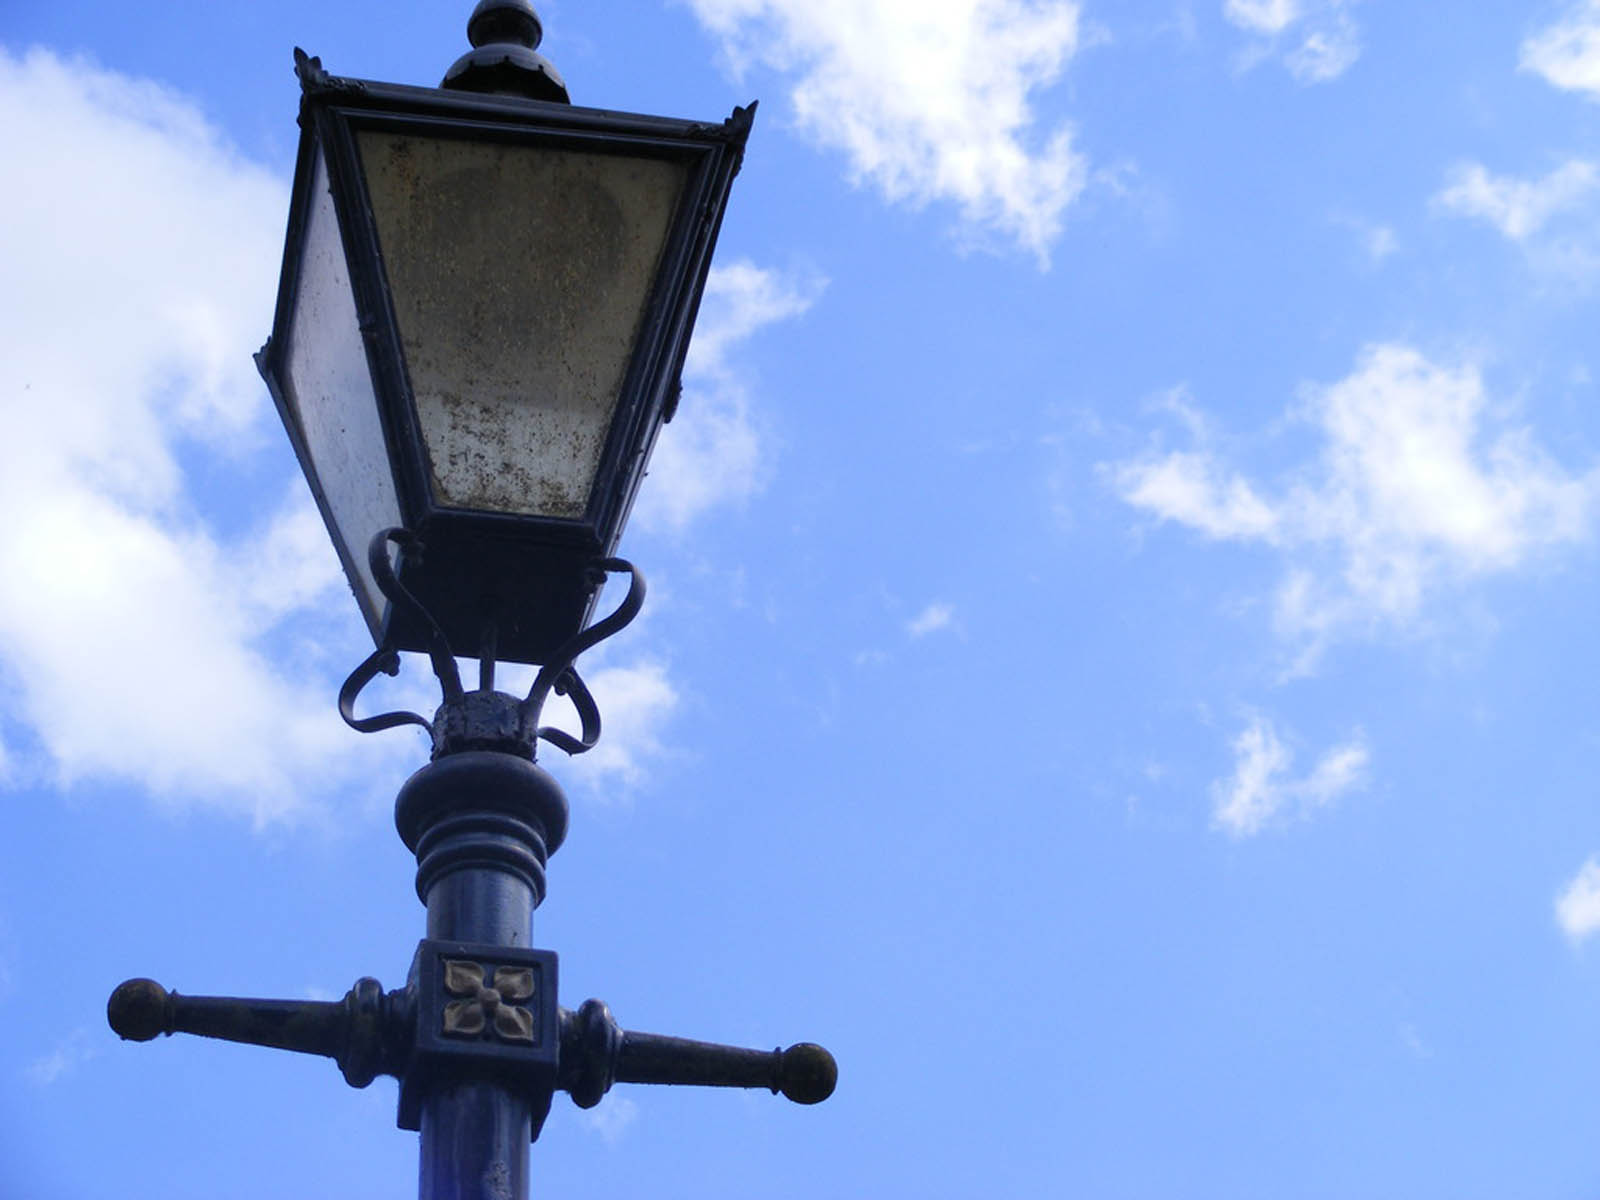 Street Lamp Wallpaper Xs Wallpapers Hd Street Lamps